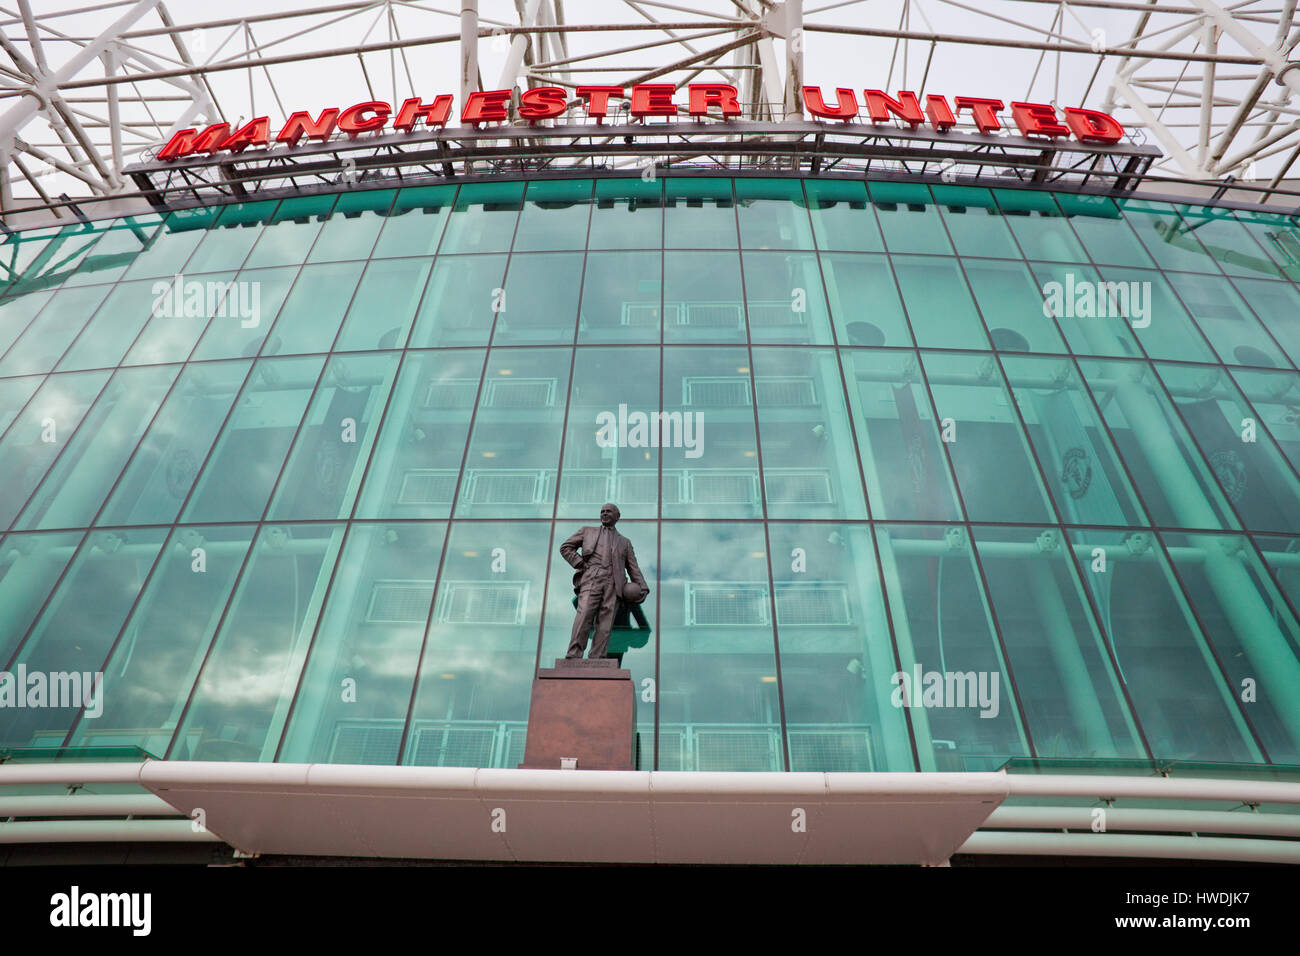 Old Trafford football stadium - Stock Image